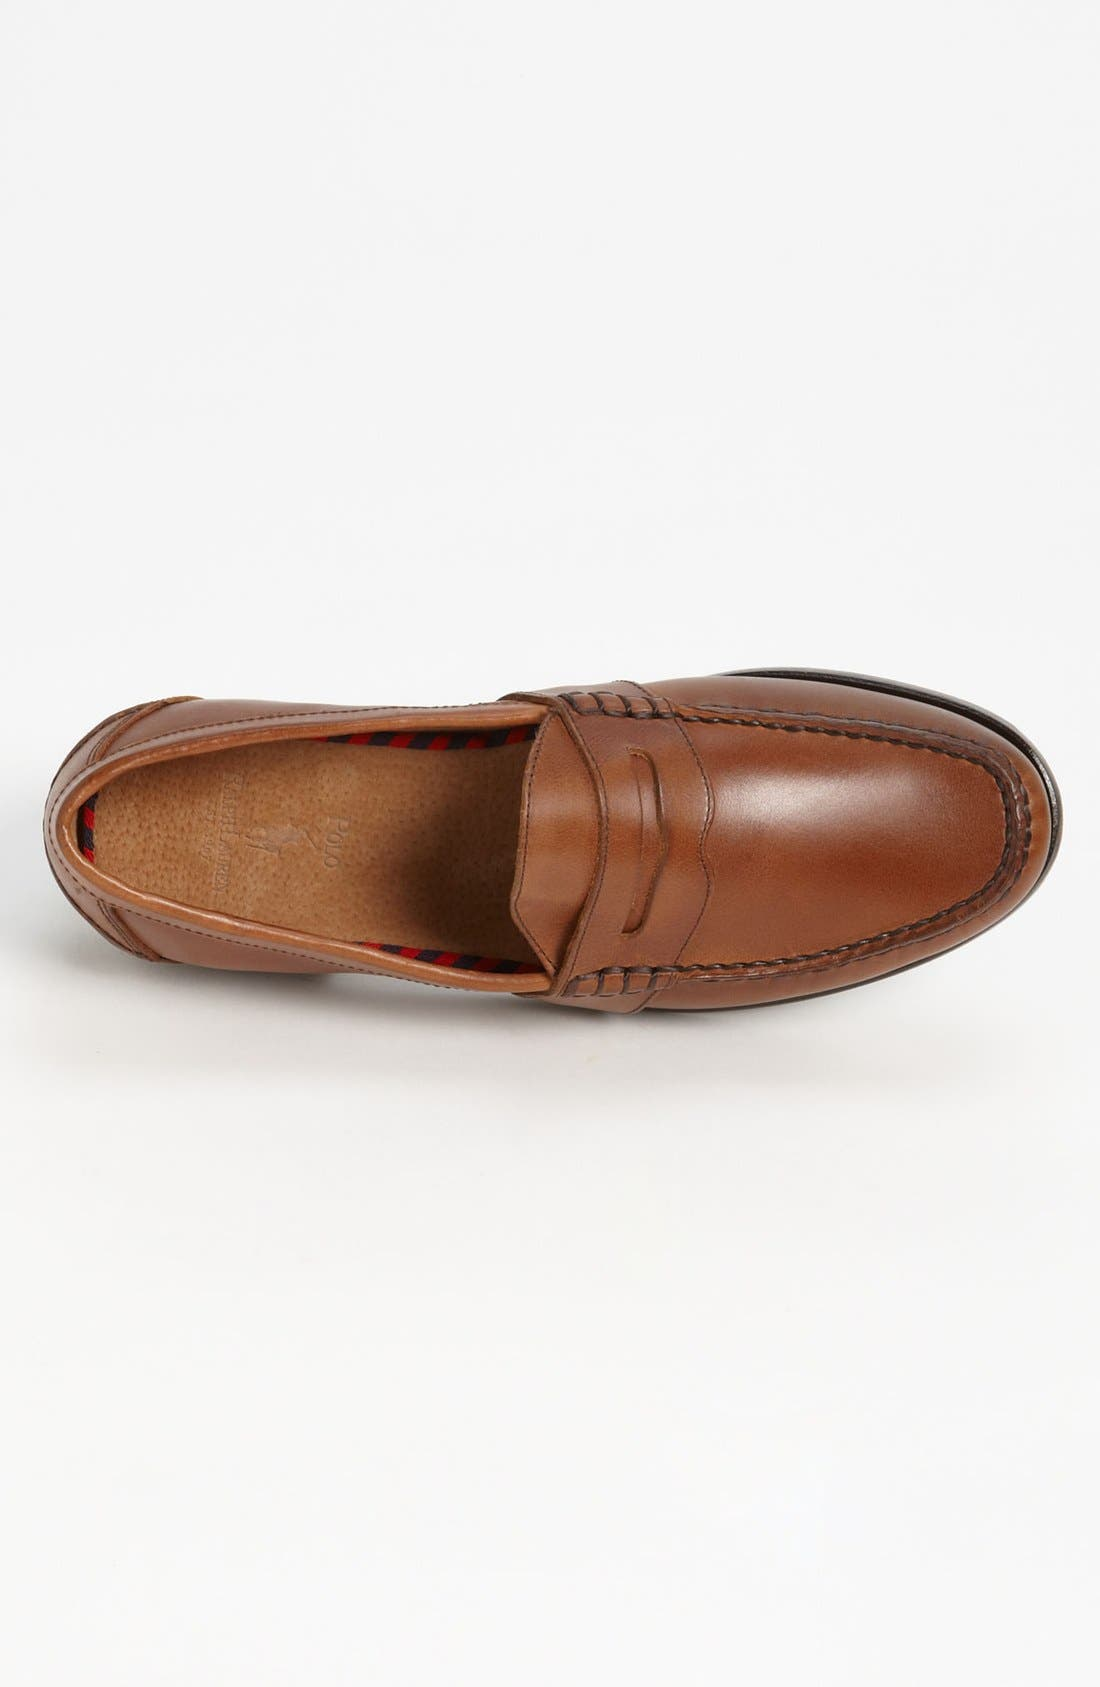 Alternate Image 3  - Polo Ralph Lauren 'Arscott' Penny Loafer